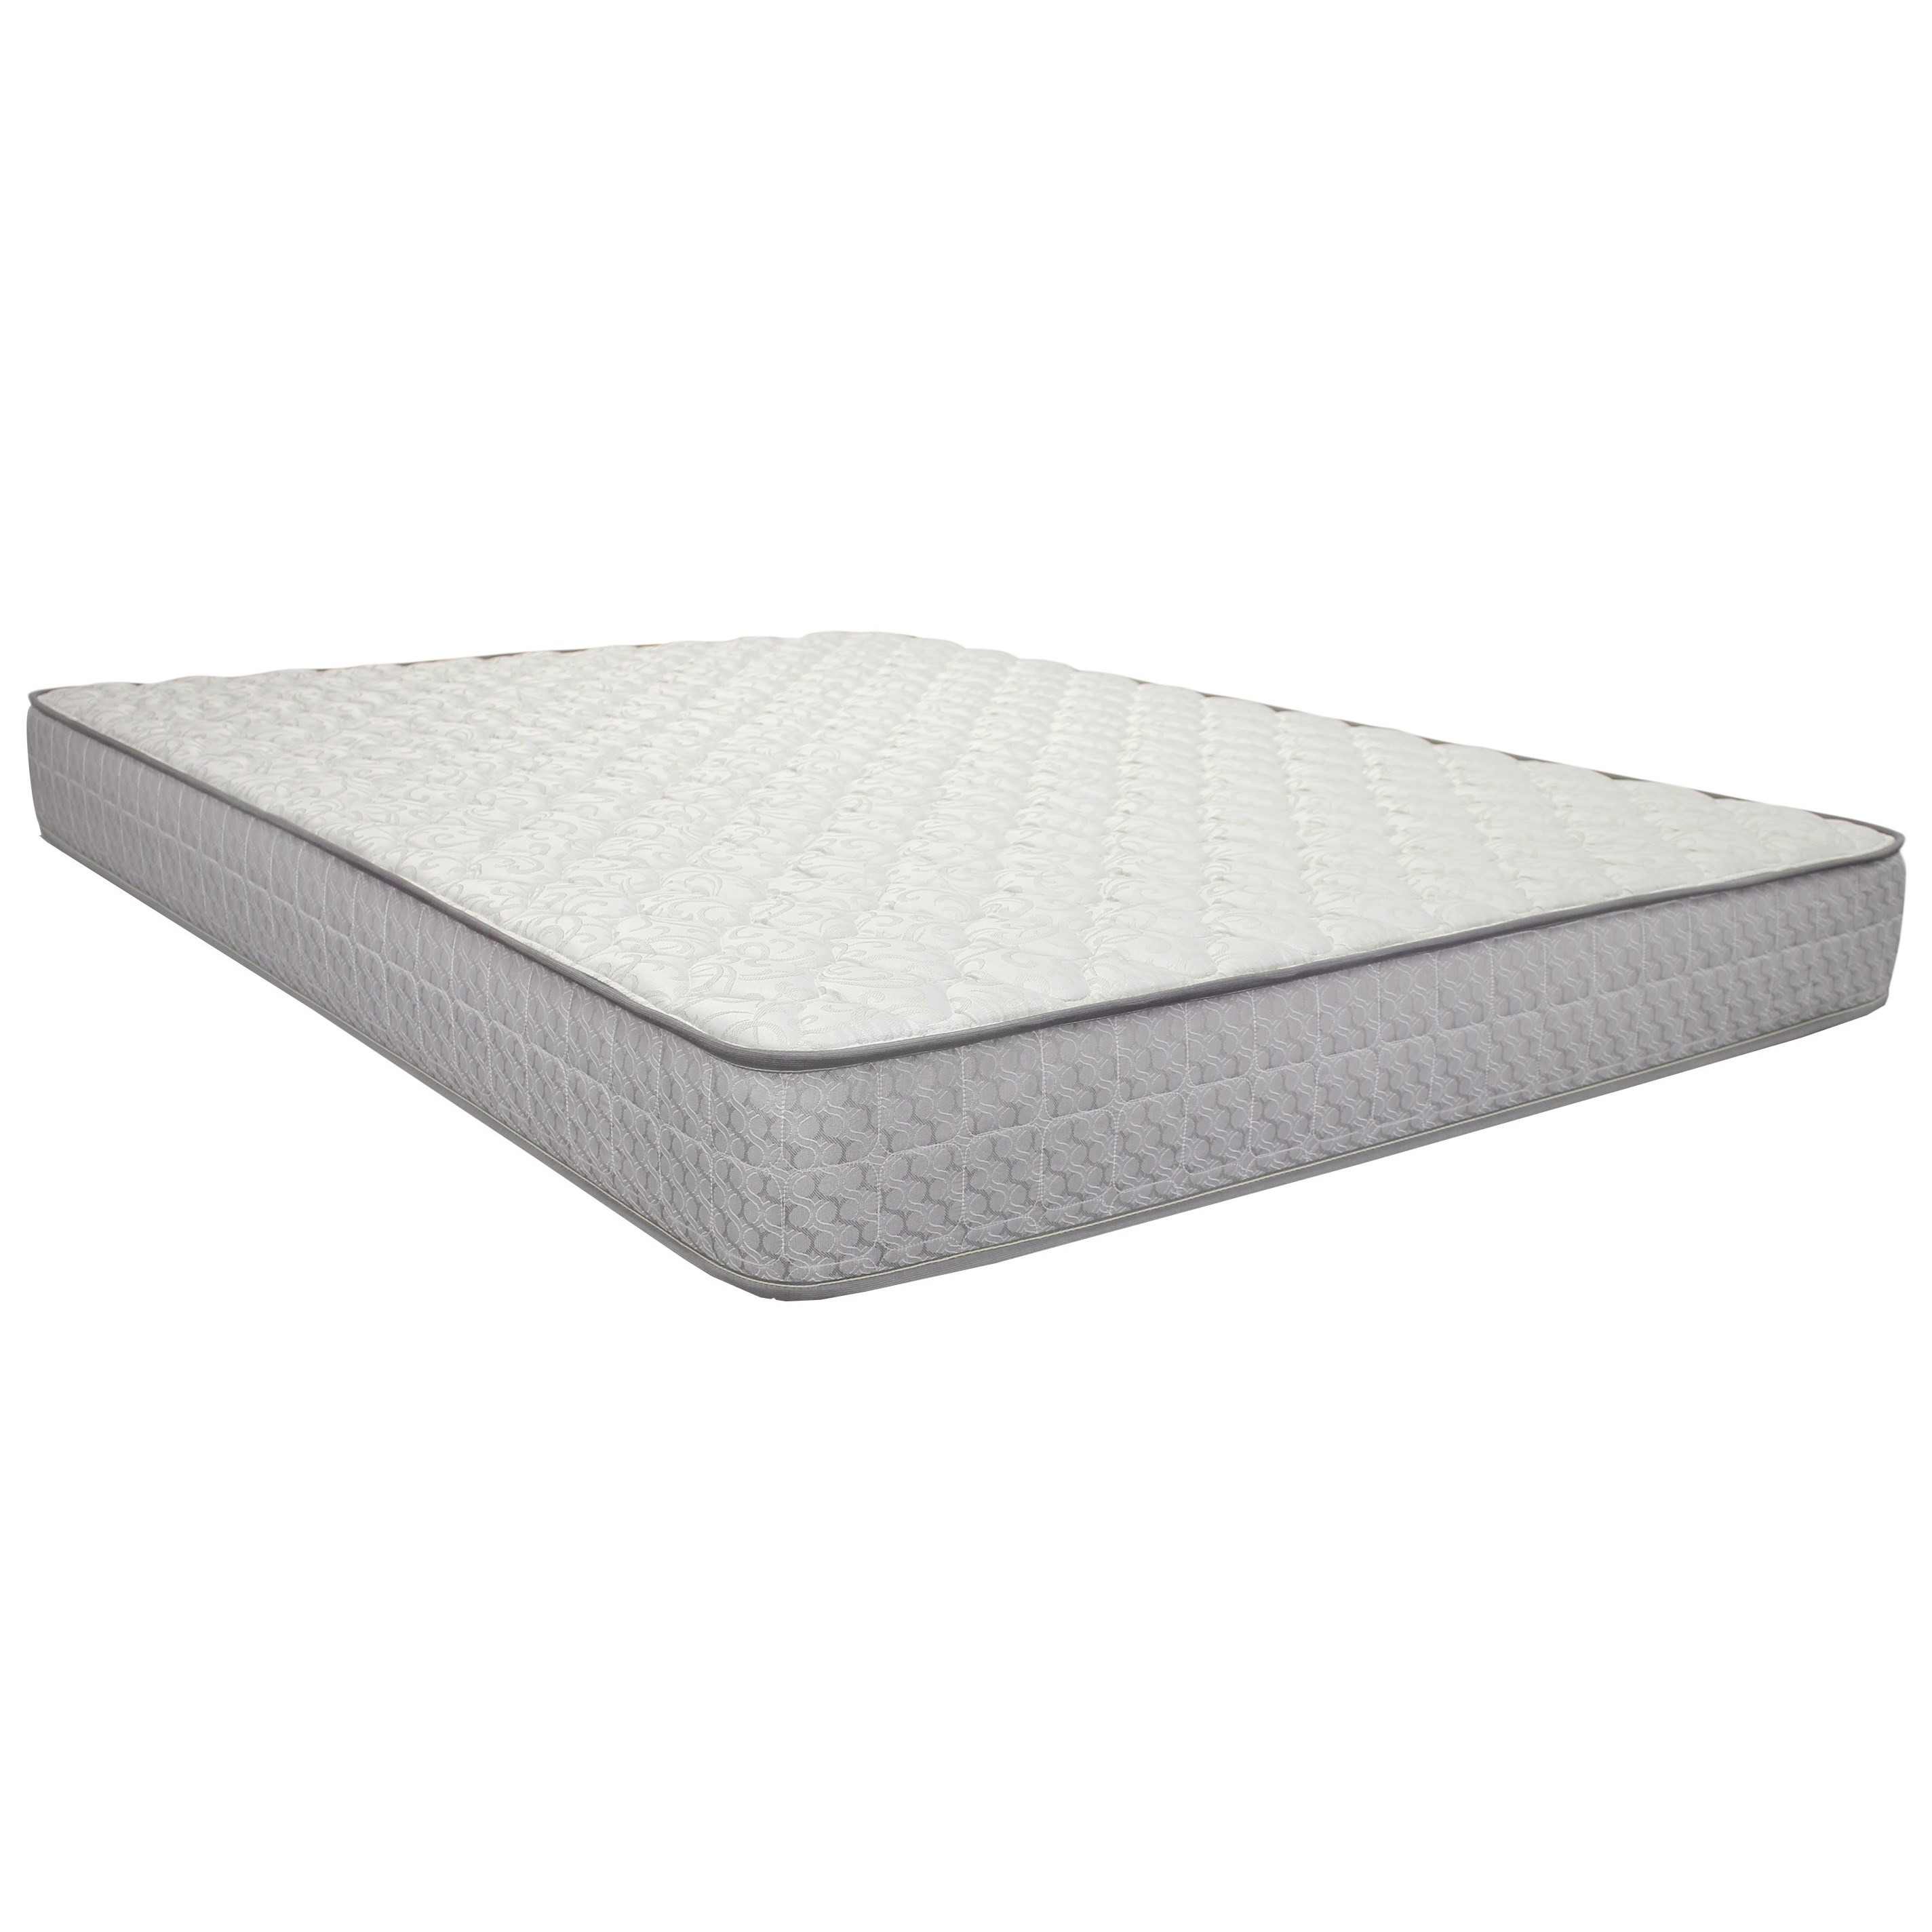 "Twin 8 1/2"" Innerspring EPT Mattress"